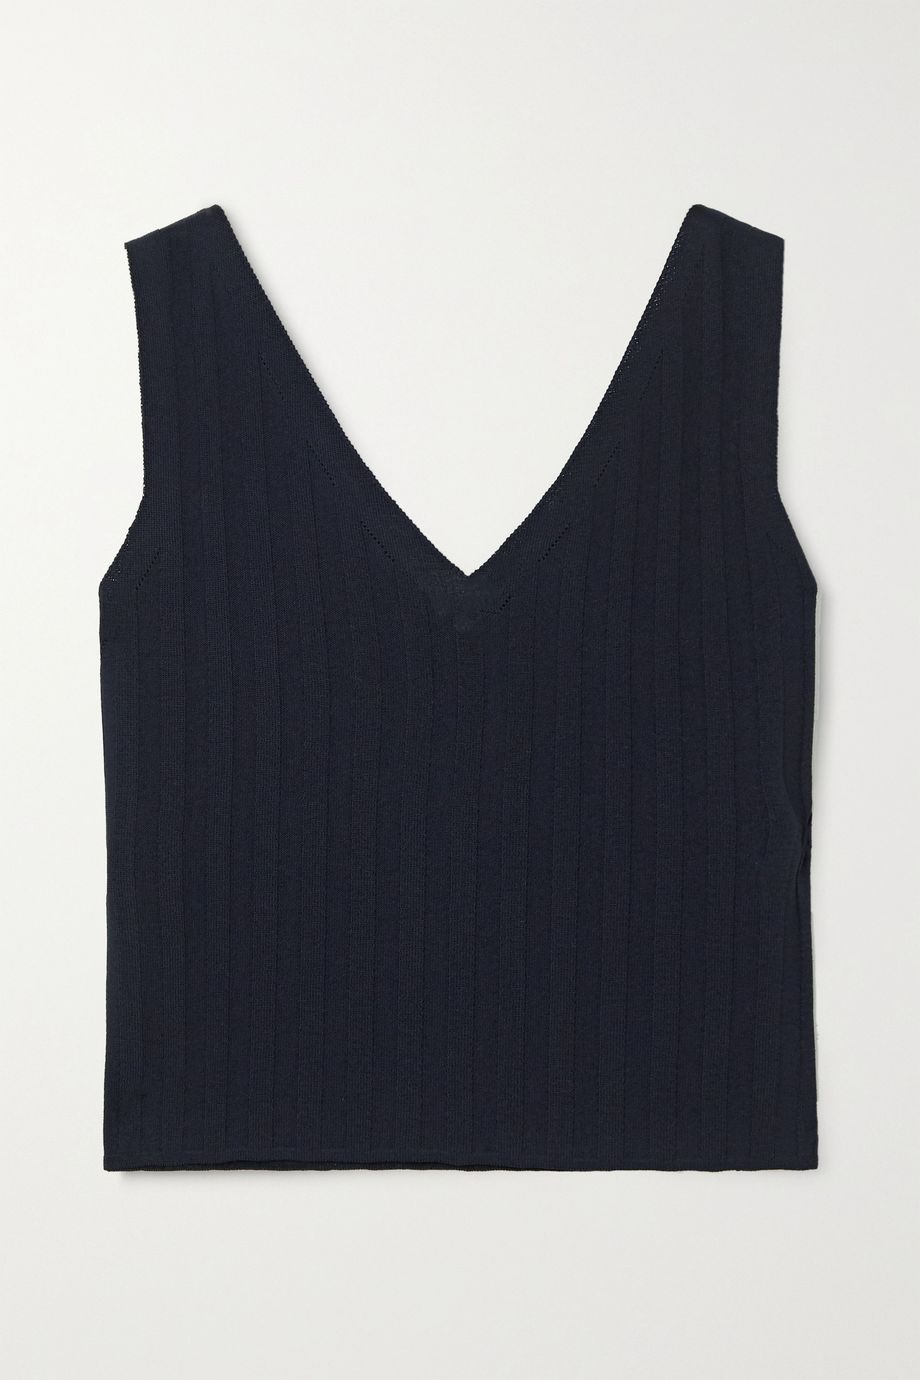 LE 17 SEPTEMBRE Ribbed-knit tank